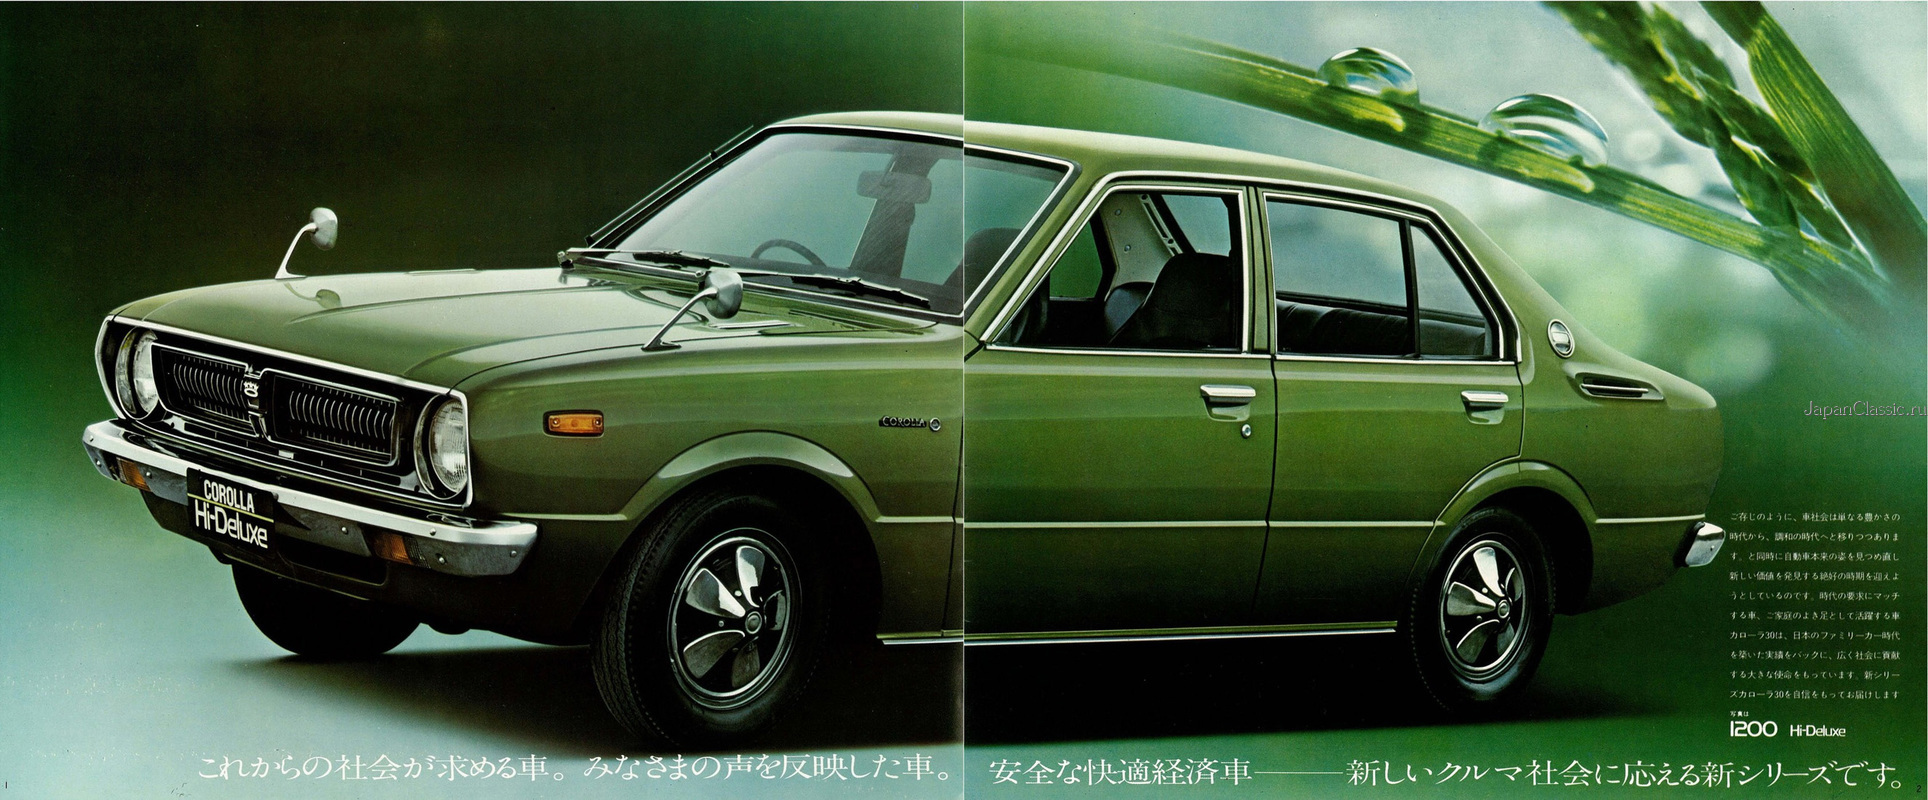 toyota corolla 1974 sedan e30 japanclassic. Black Bedroom Furniture Sets. Home Design Ideas